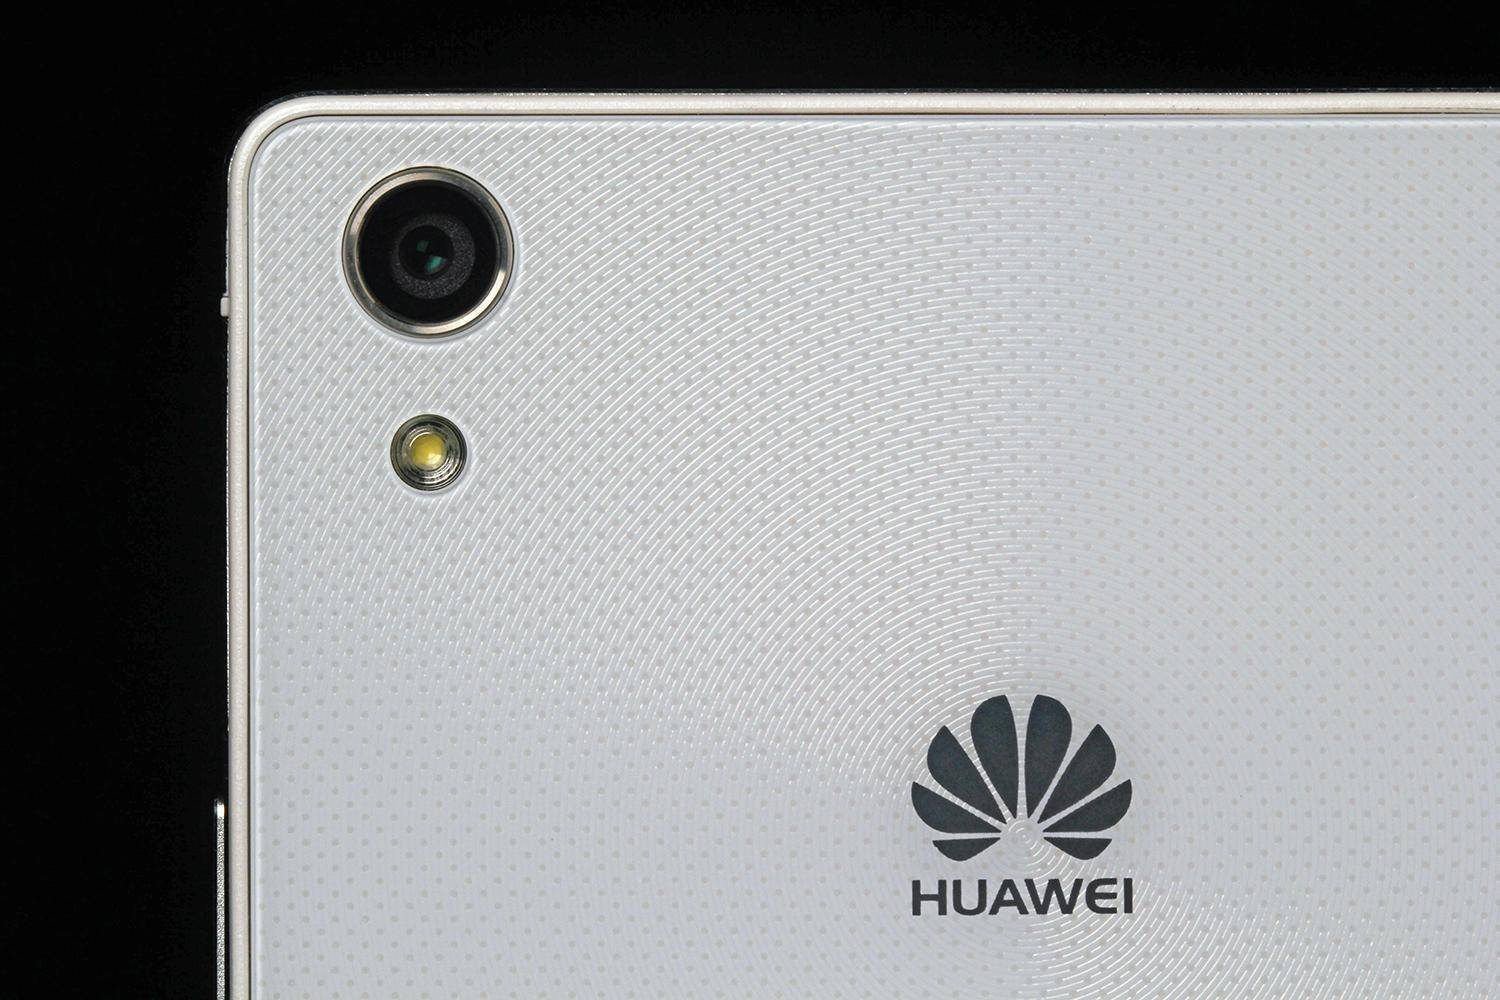 Nexus di Huawei forse con processore Qualcomm Snapdragon 810